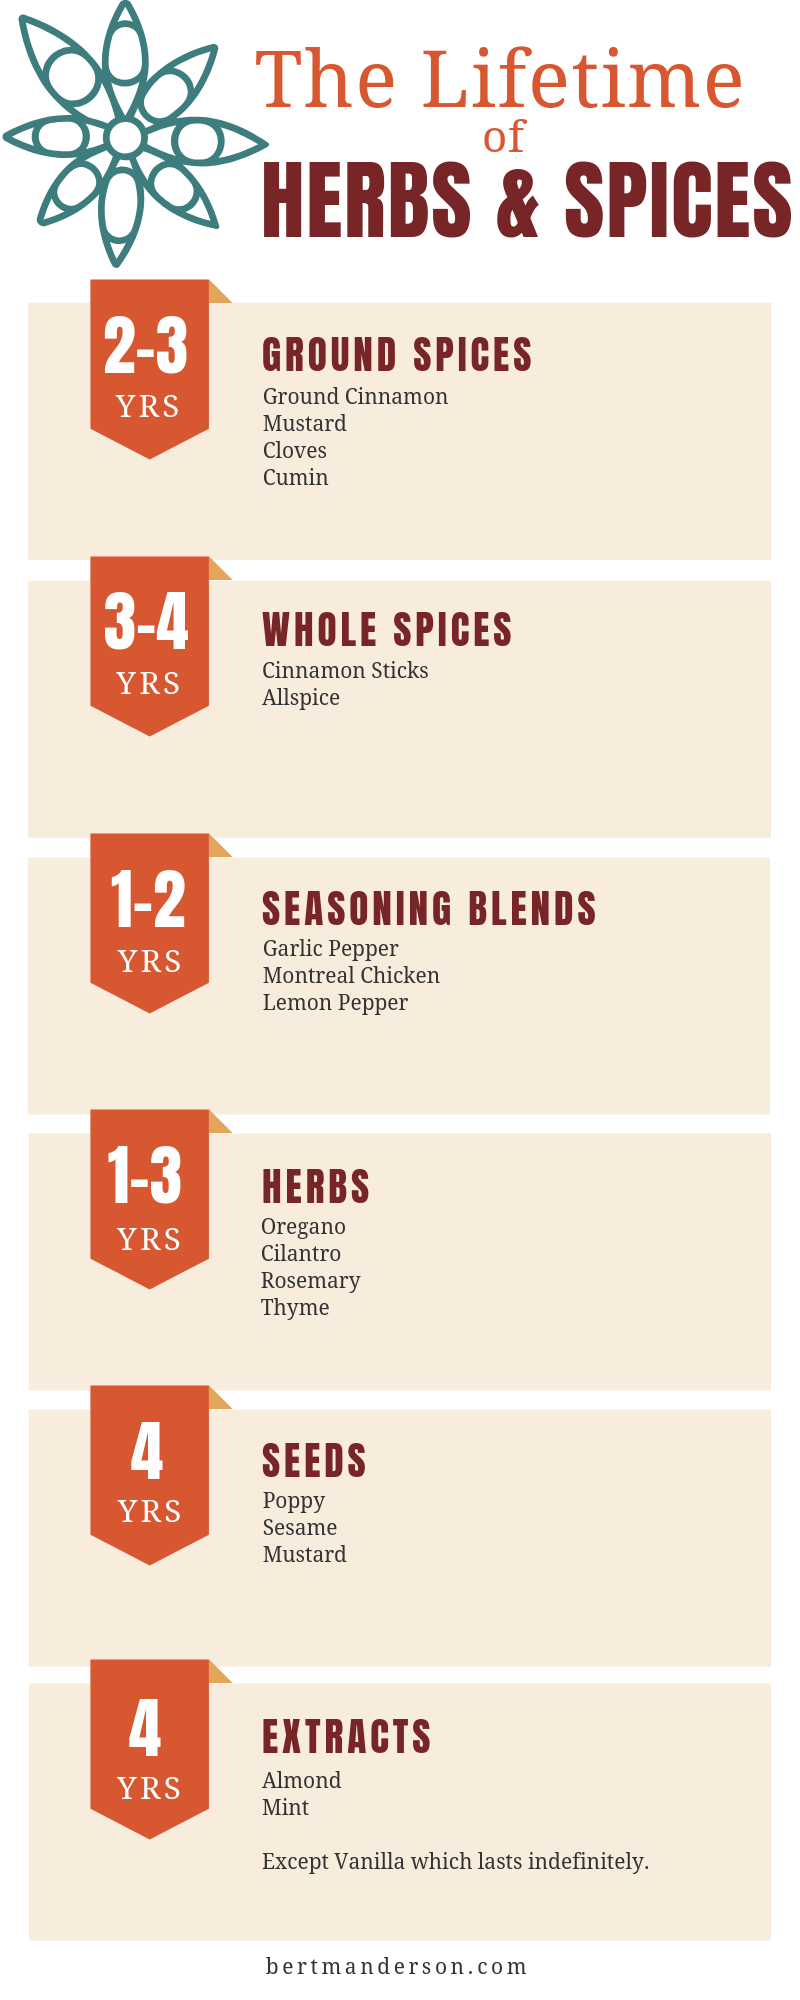 Lifetime of Herbs & Spices. How long do they last and when should you buy new spices?